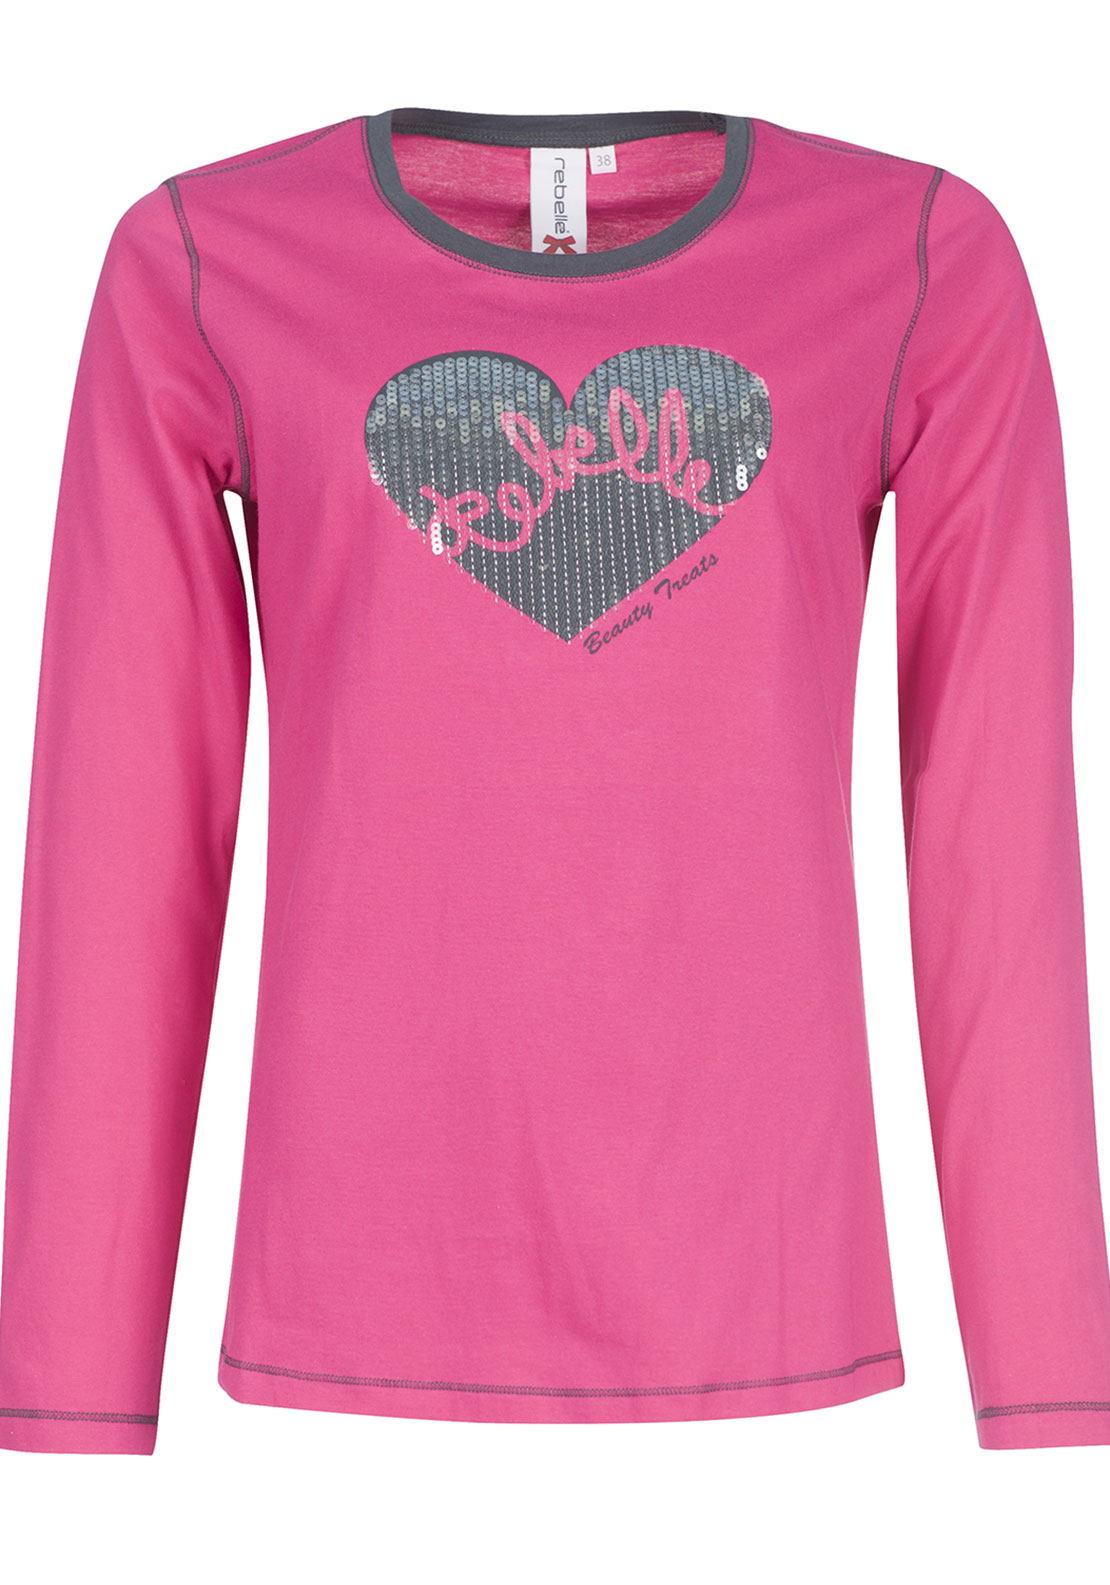 Rebelle Sequin Heart Print Pyjama Top, Pink